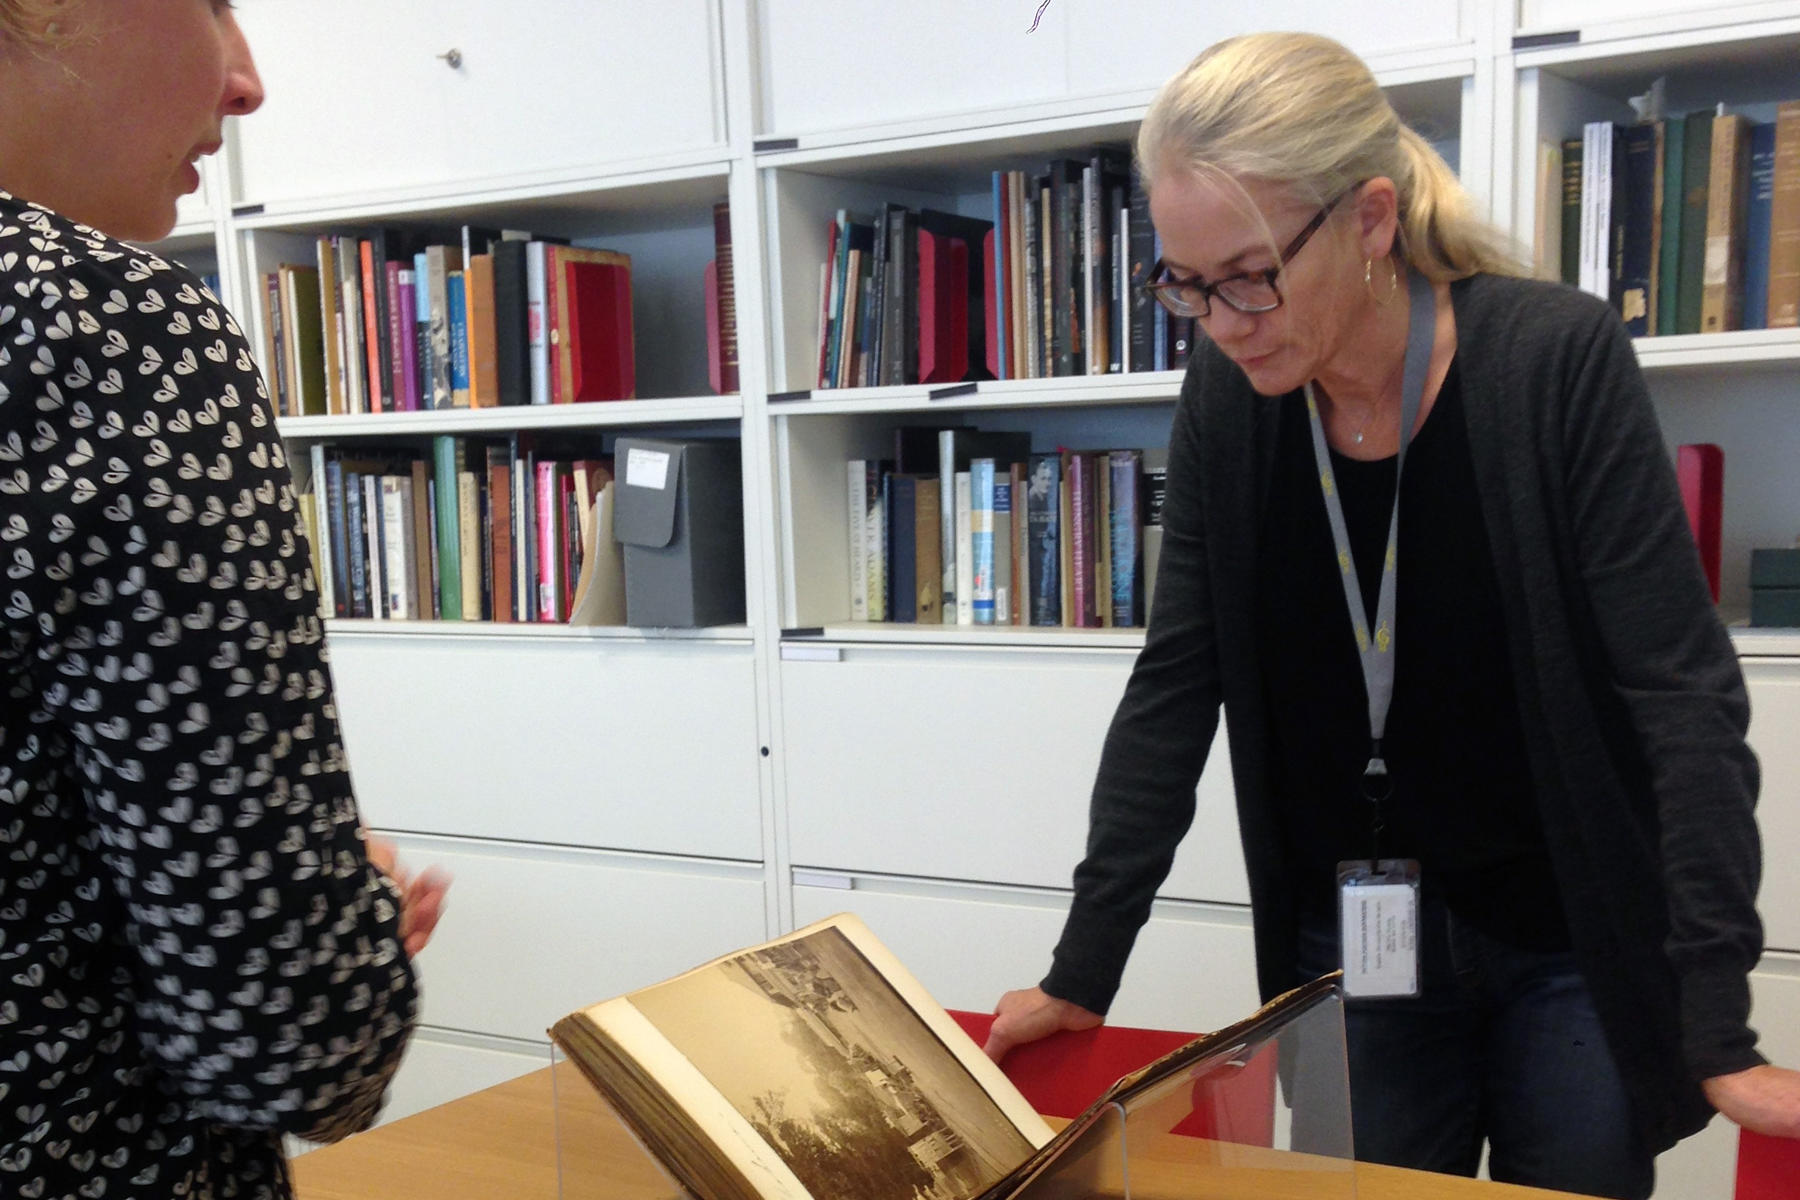 Rachel Perry viewing Isabella Stewart Gardner's travel scrapbooks in the archives, 2014